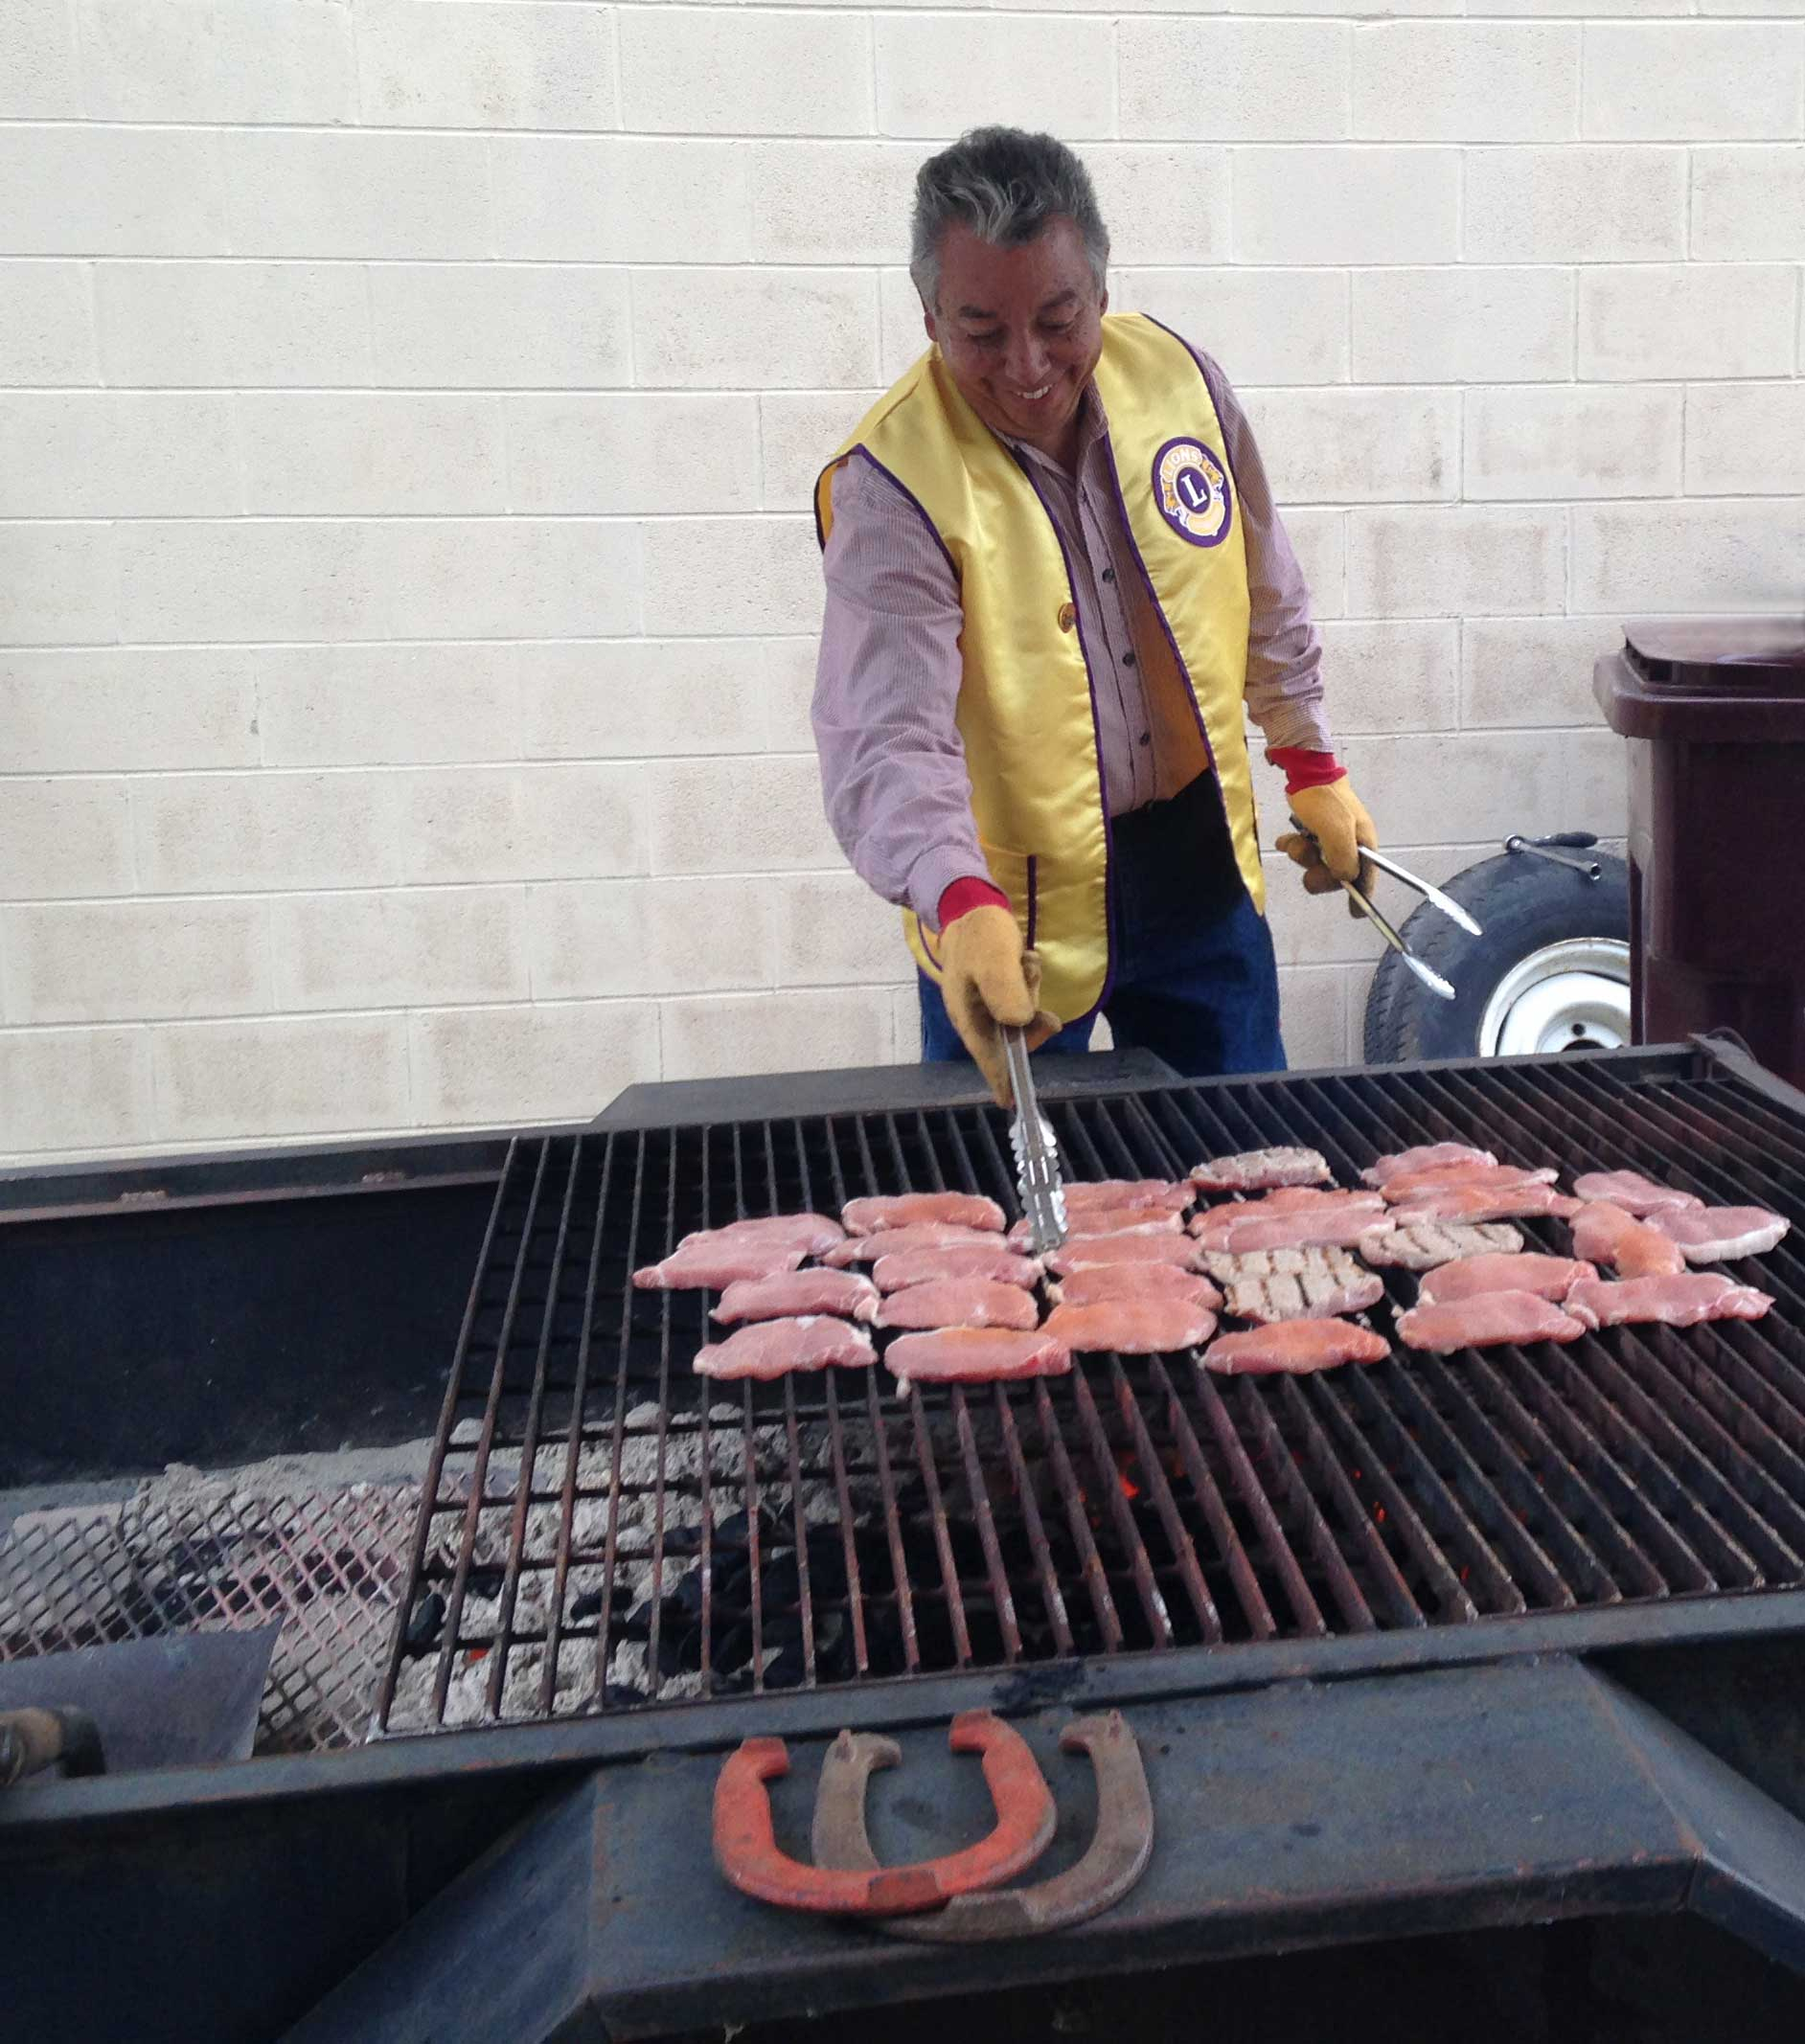 Cortland Lion Mike on the grill image